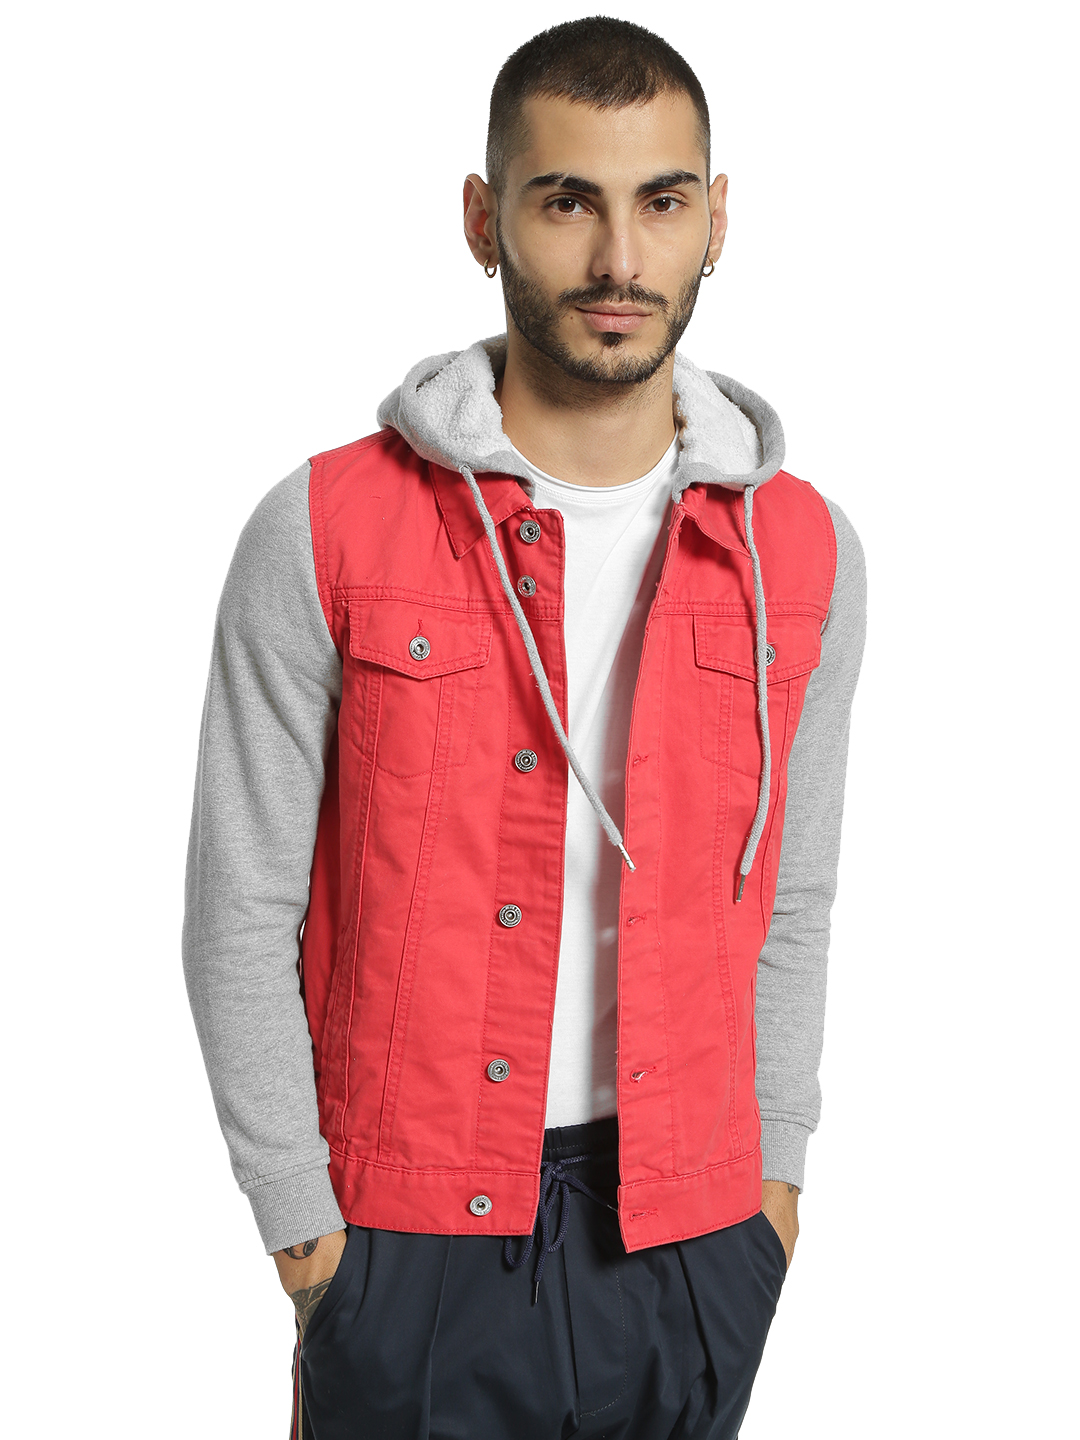 Blue Saint Red Jersey Sleeve Hooded Denim Jacket 1